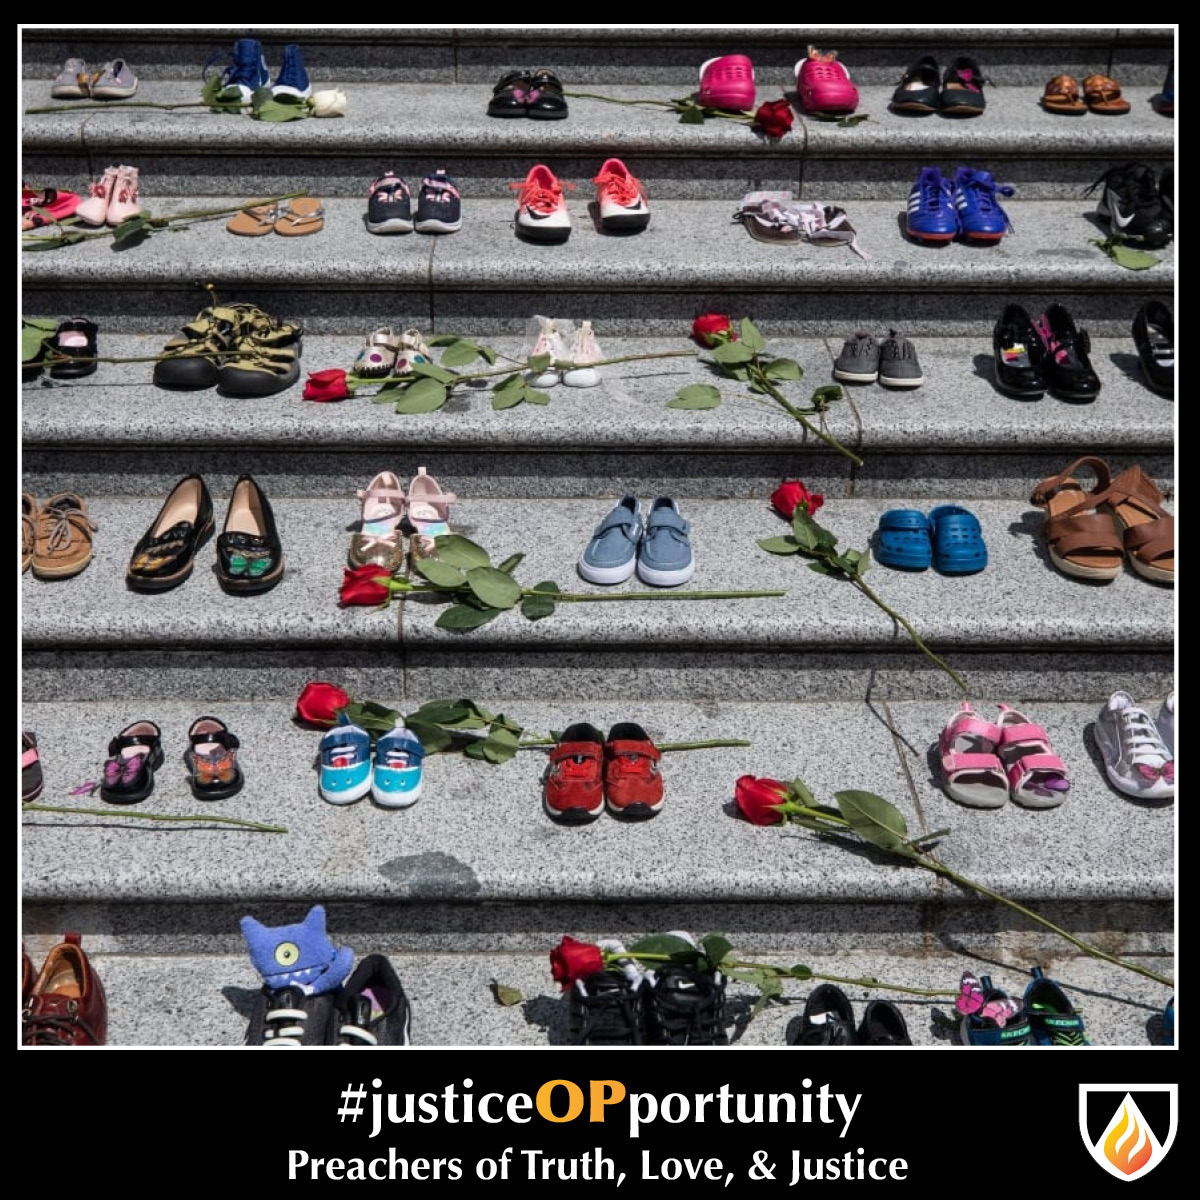 #justiceOPportunity Thursday